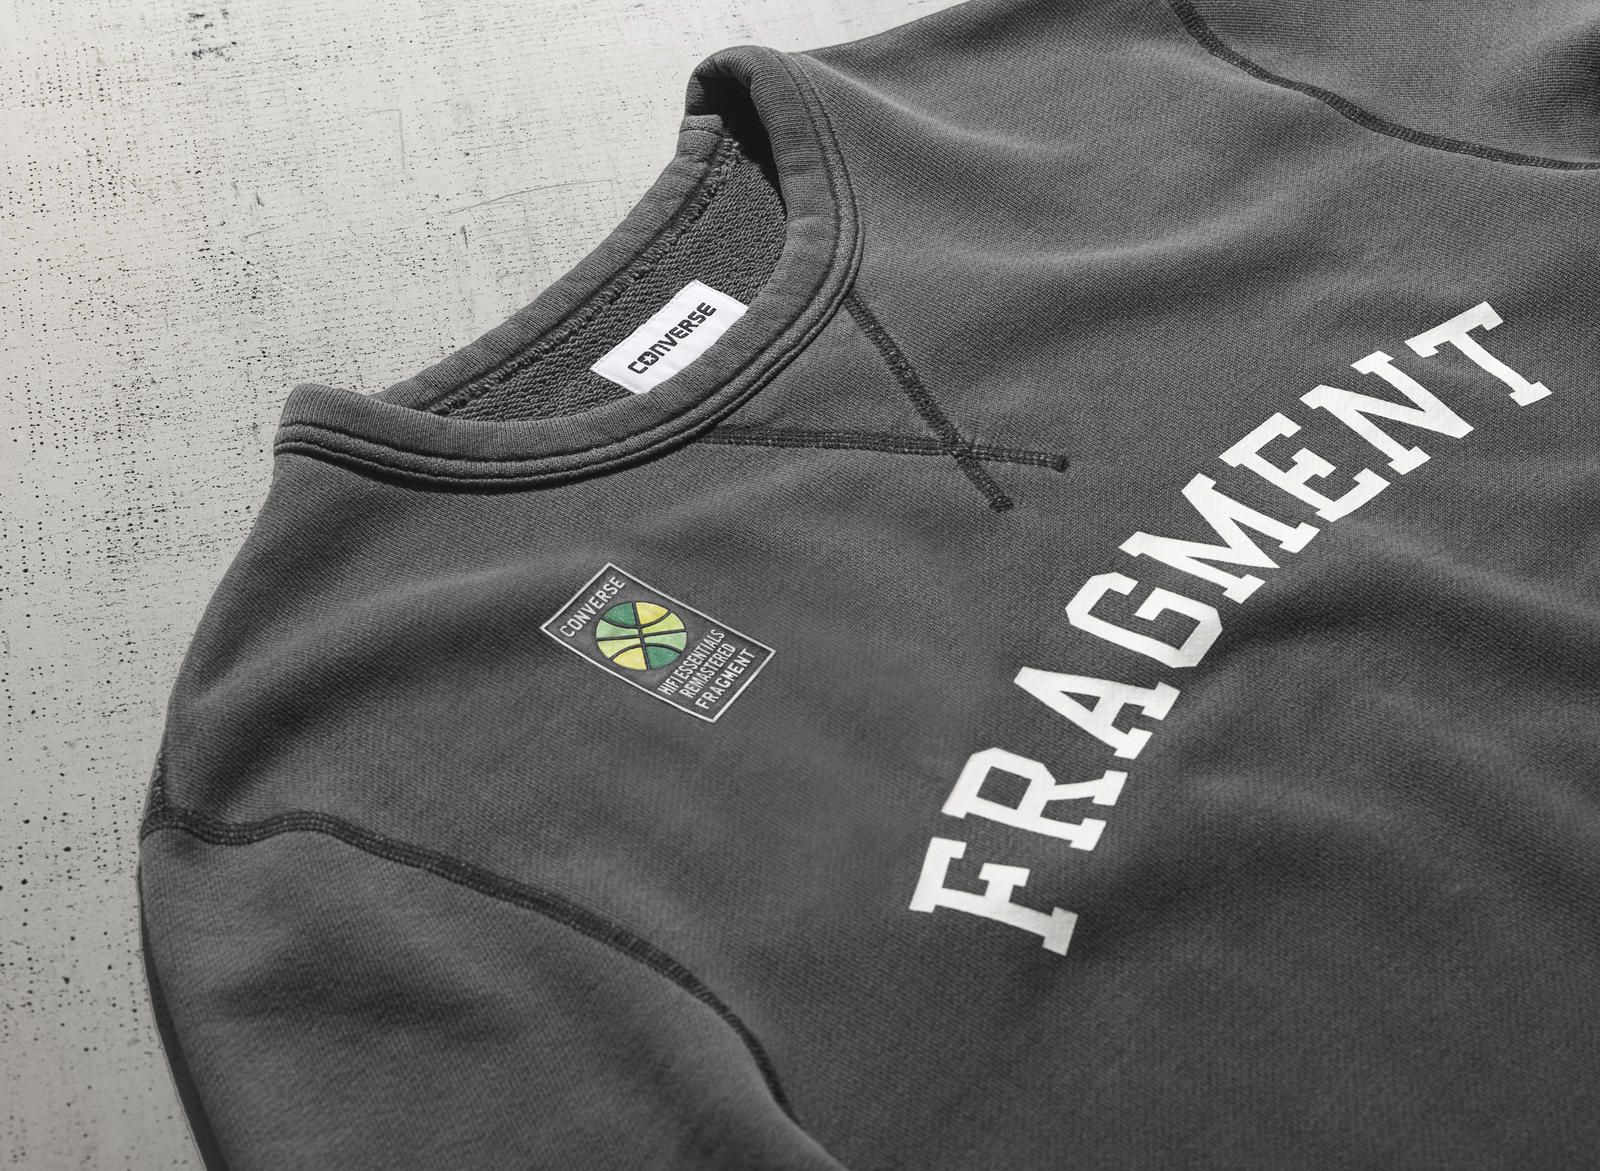 06f6a642276c Fh16 Apparel Fragment Crewneck Detail3 10003837. To introduce the Converse  Essentials collection ...